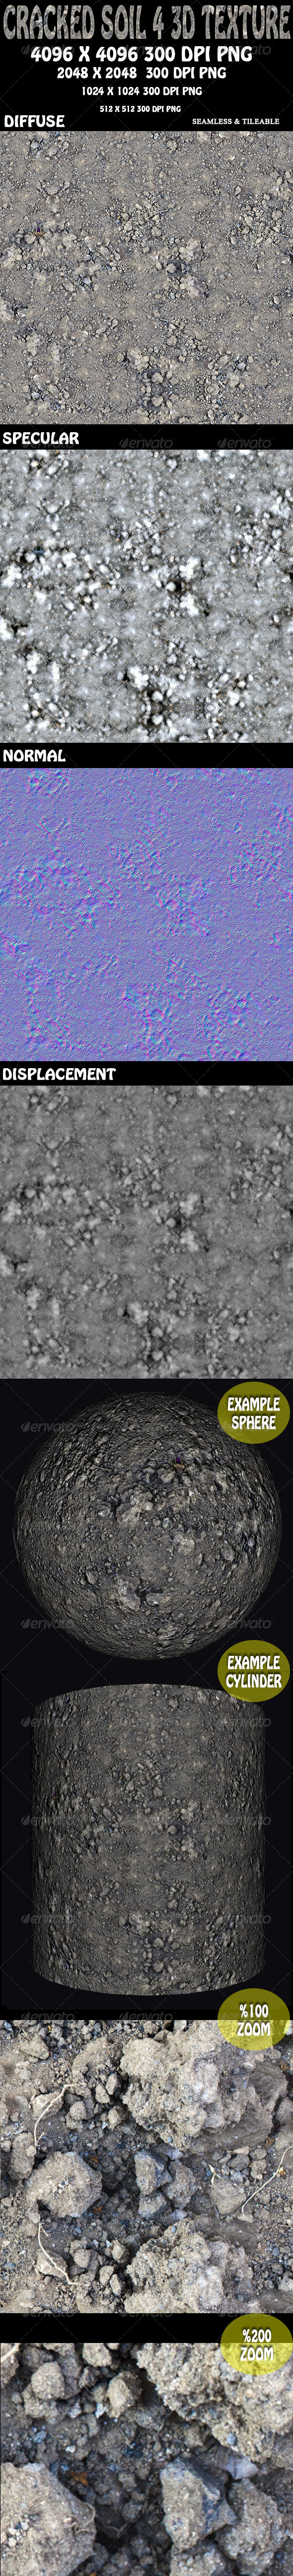 Cracked Soil 4 - 3D Texture - 3DOcean Item for Sale